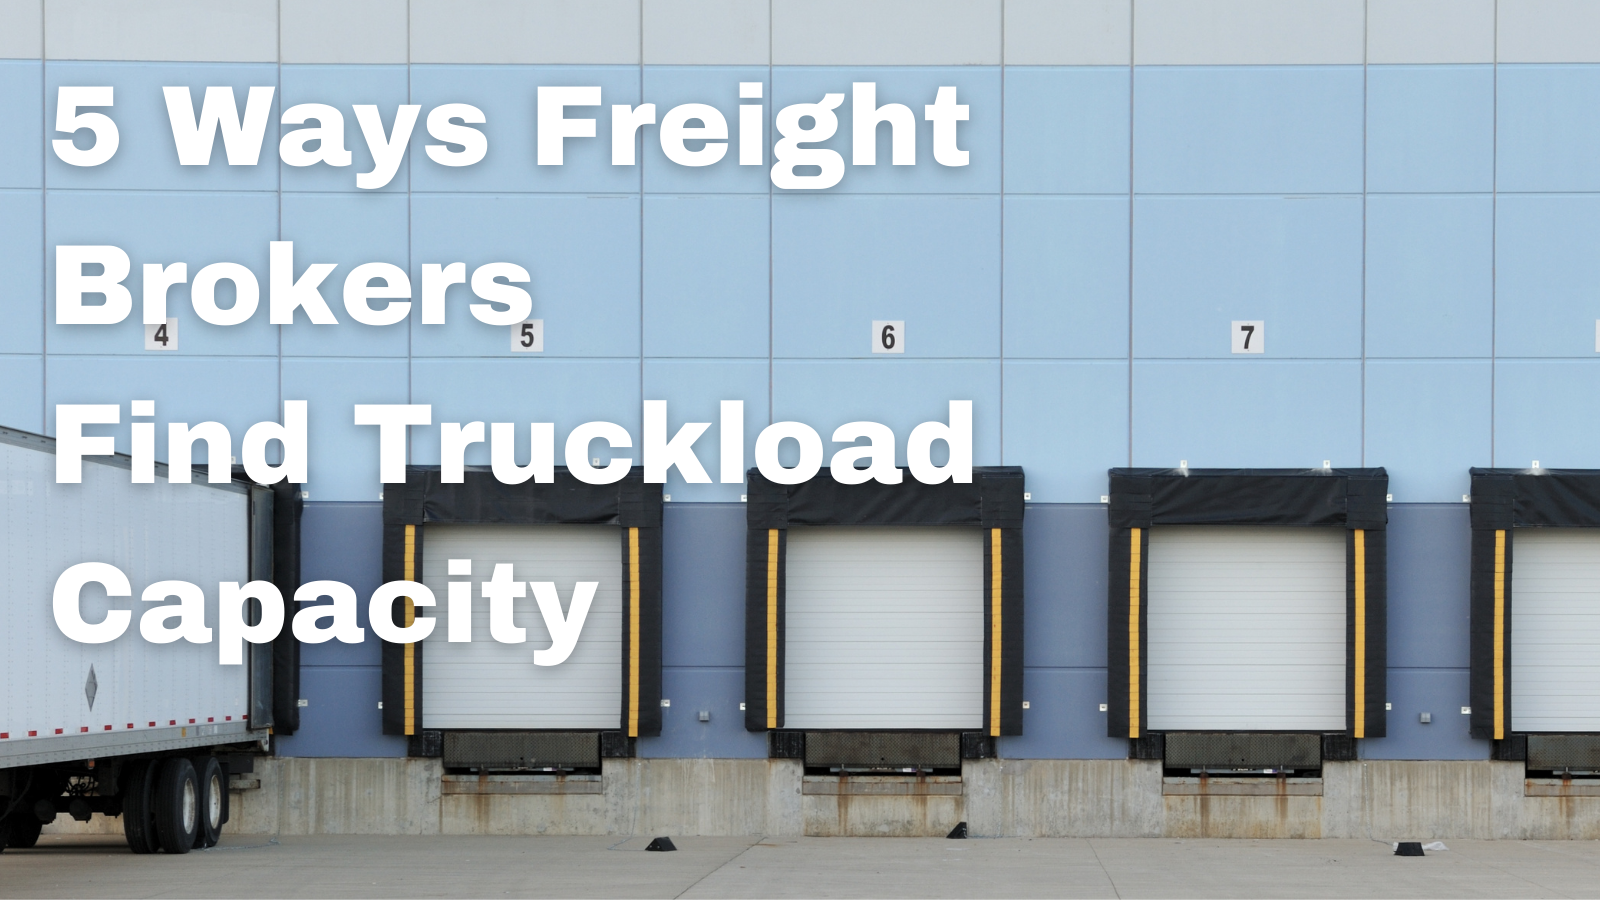 5 Ways Freight Brokers Find Truckload Capacity